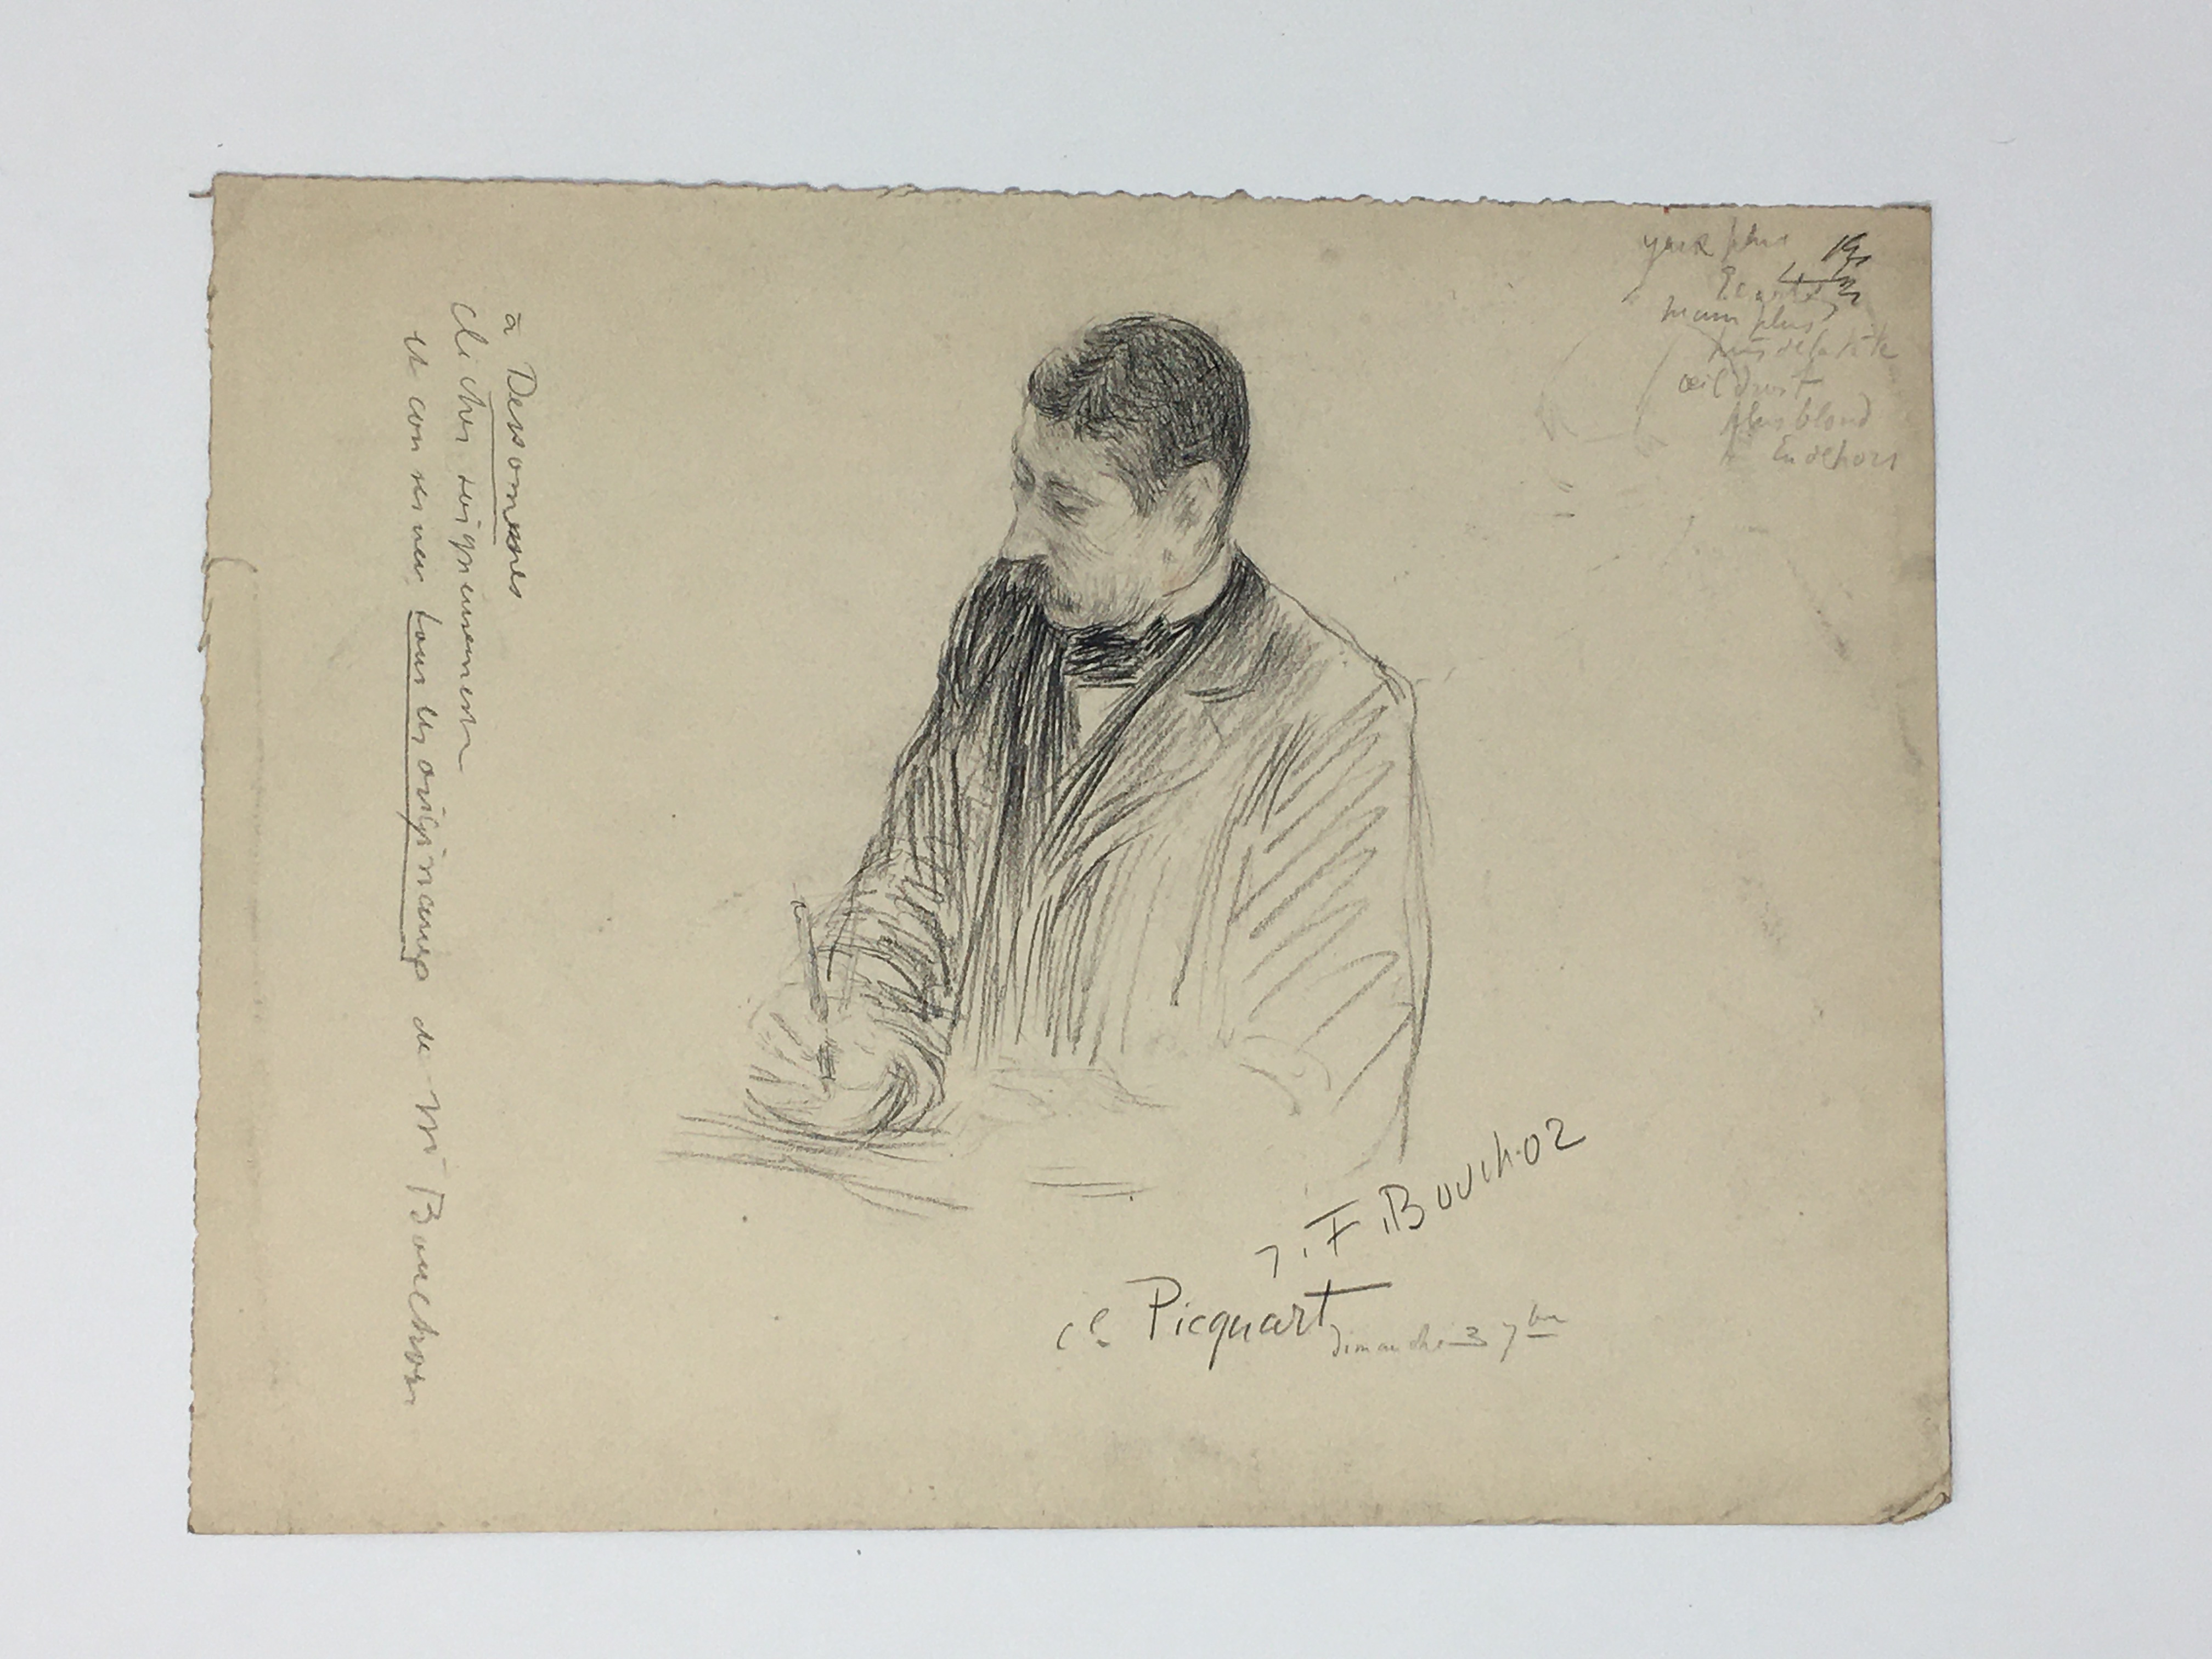 J'Accuse Newspaper, Emile Zola Quote, Signed Dreyfus Portrait, Rare Trial Drawings & Schwartzkoppen - Image 35 of 74